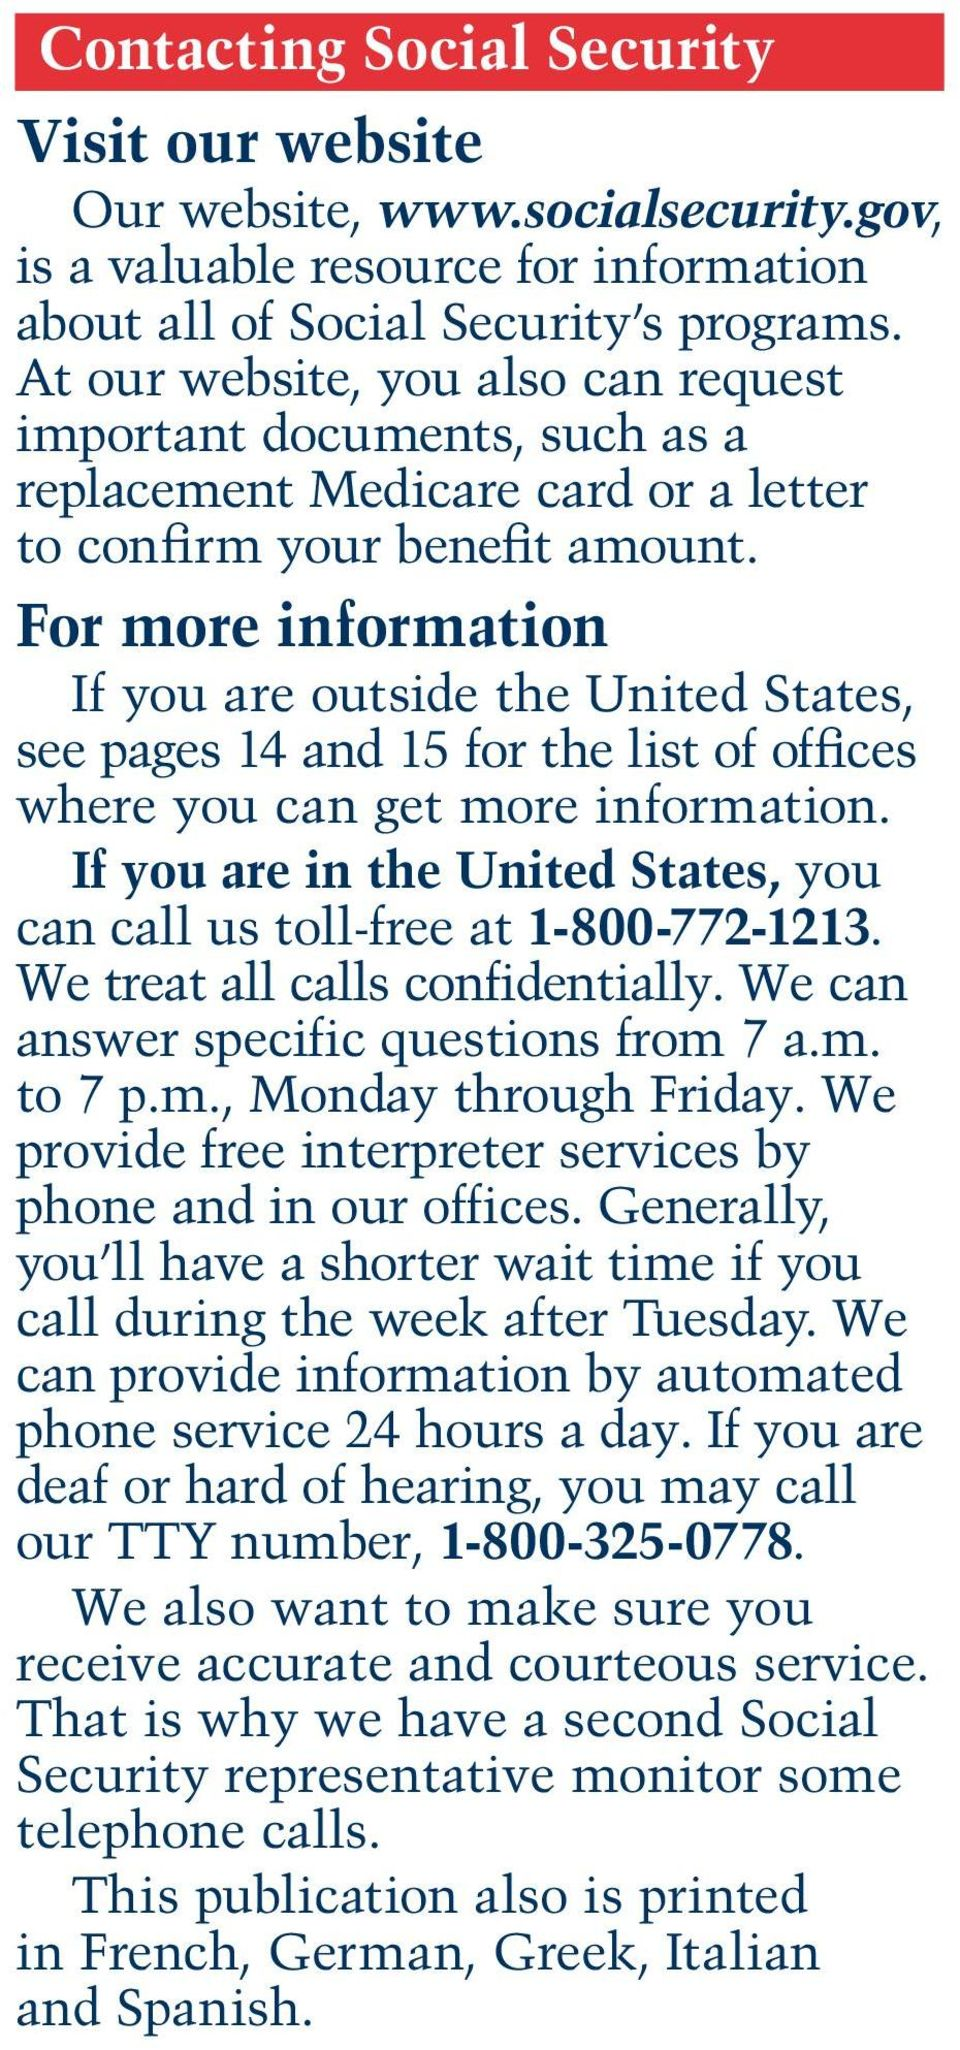 For more information If you are outside the United States, see pages 14 and 15 for the list of offices where you can get more information.